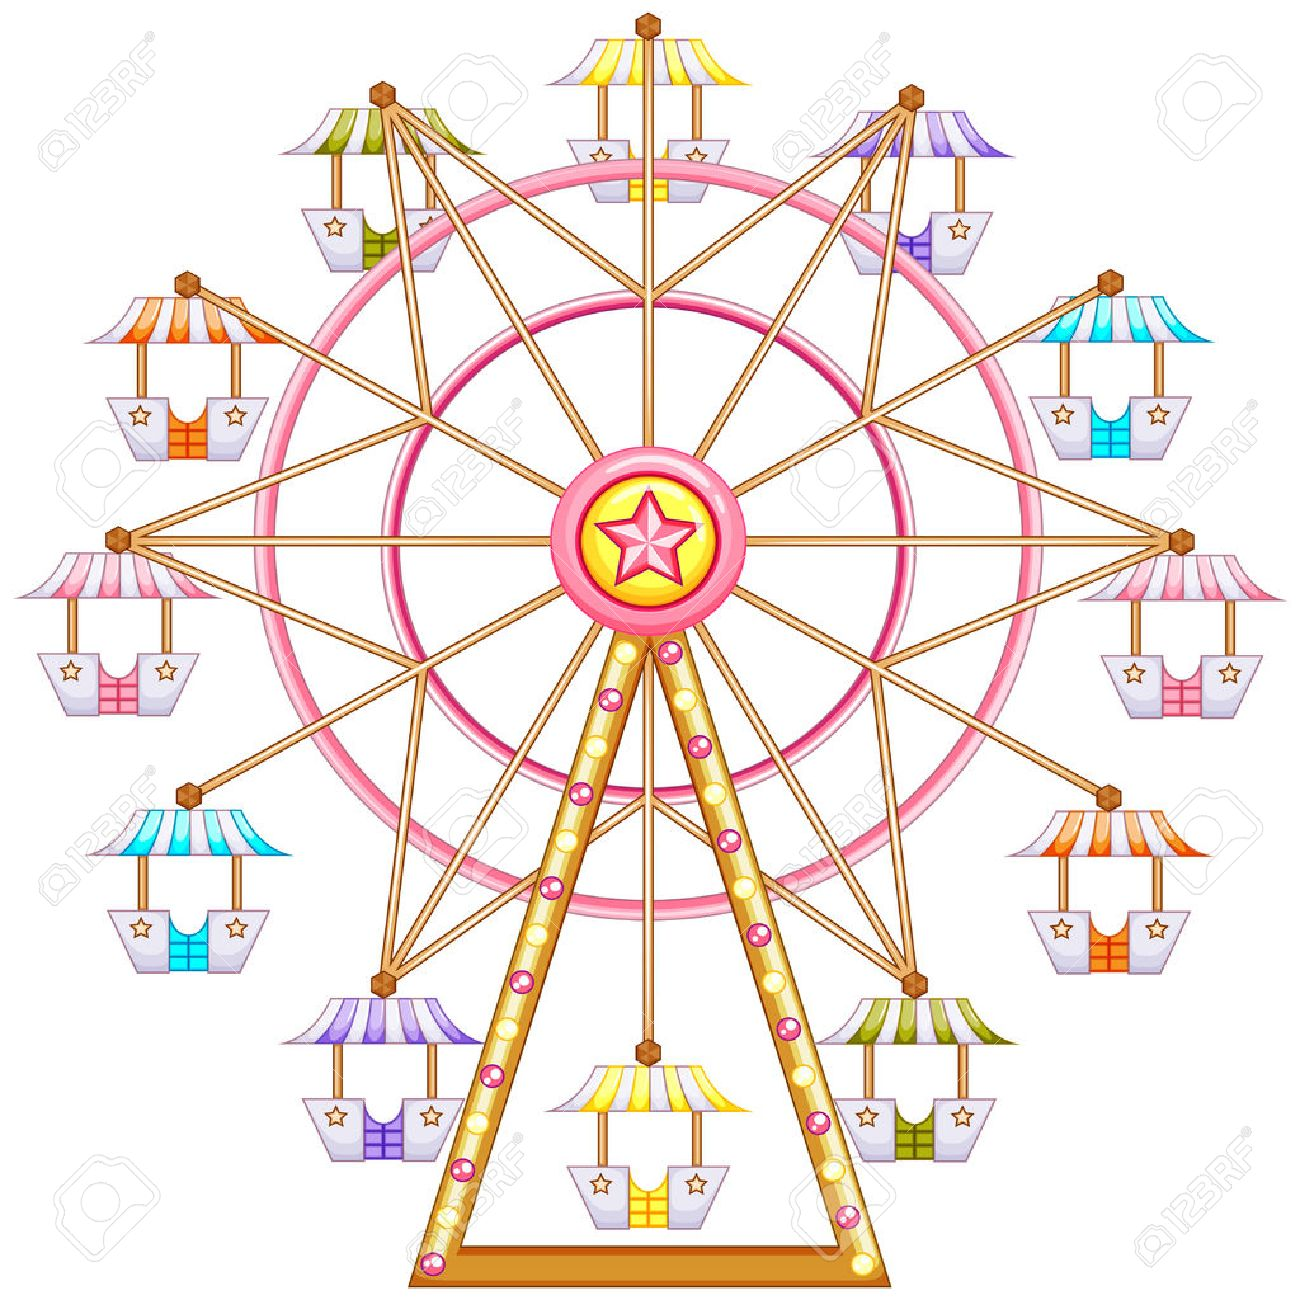 Ferris wheel isolated stock photos pictures royalty free ferris illustration of a ferris wheel ride on a white background biocorpaavc